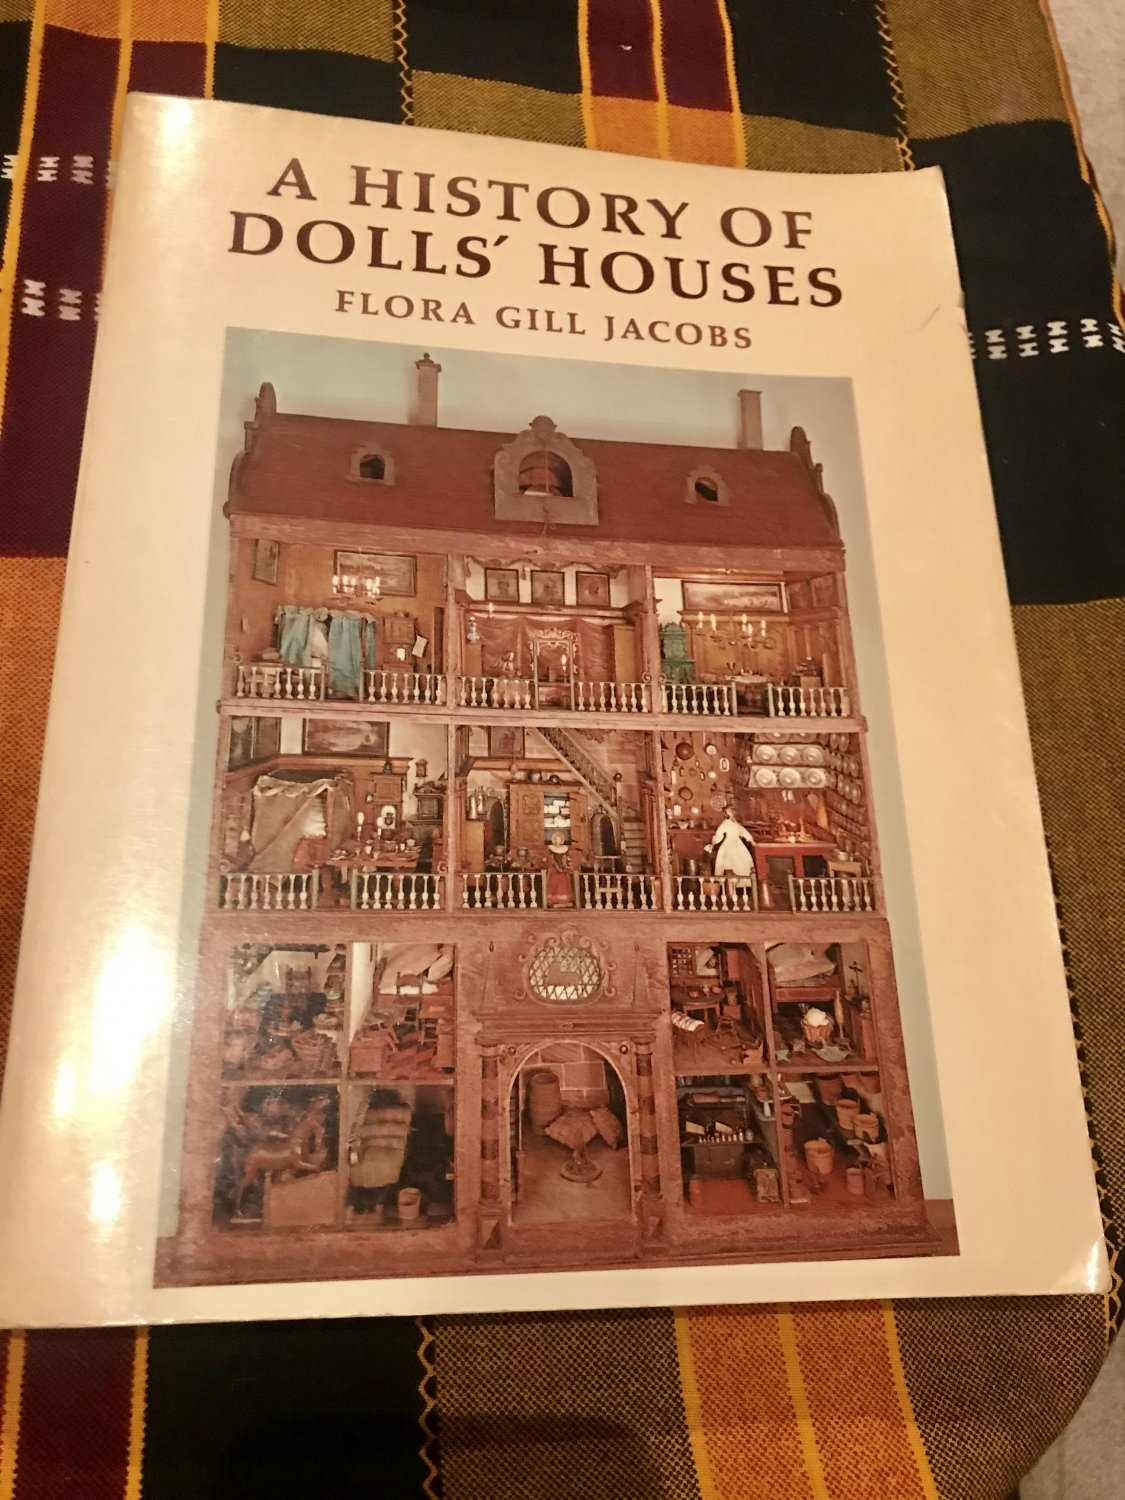 A History of Dolls' Houses Later Edition Edition by F. G. Jacobs (Author)